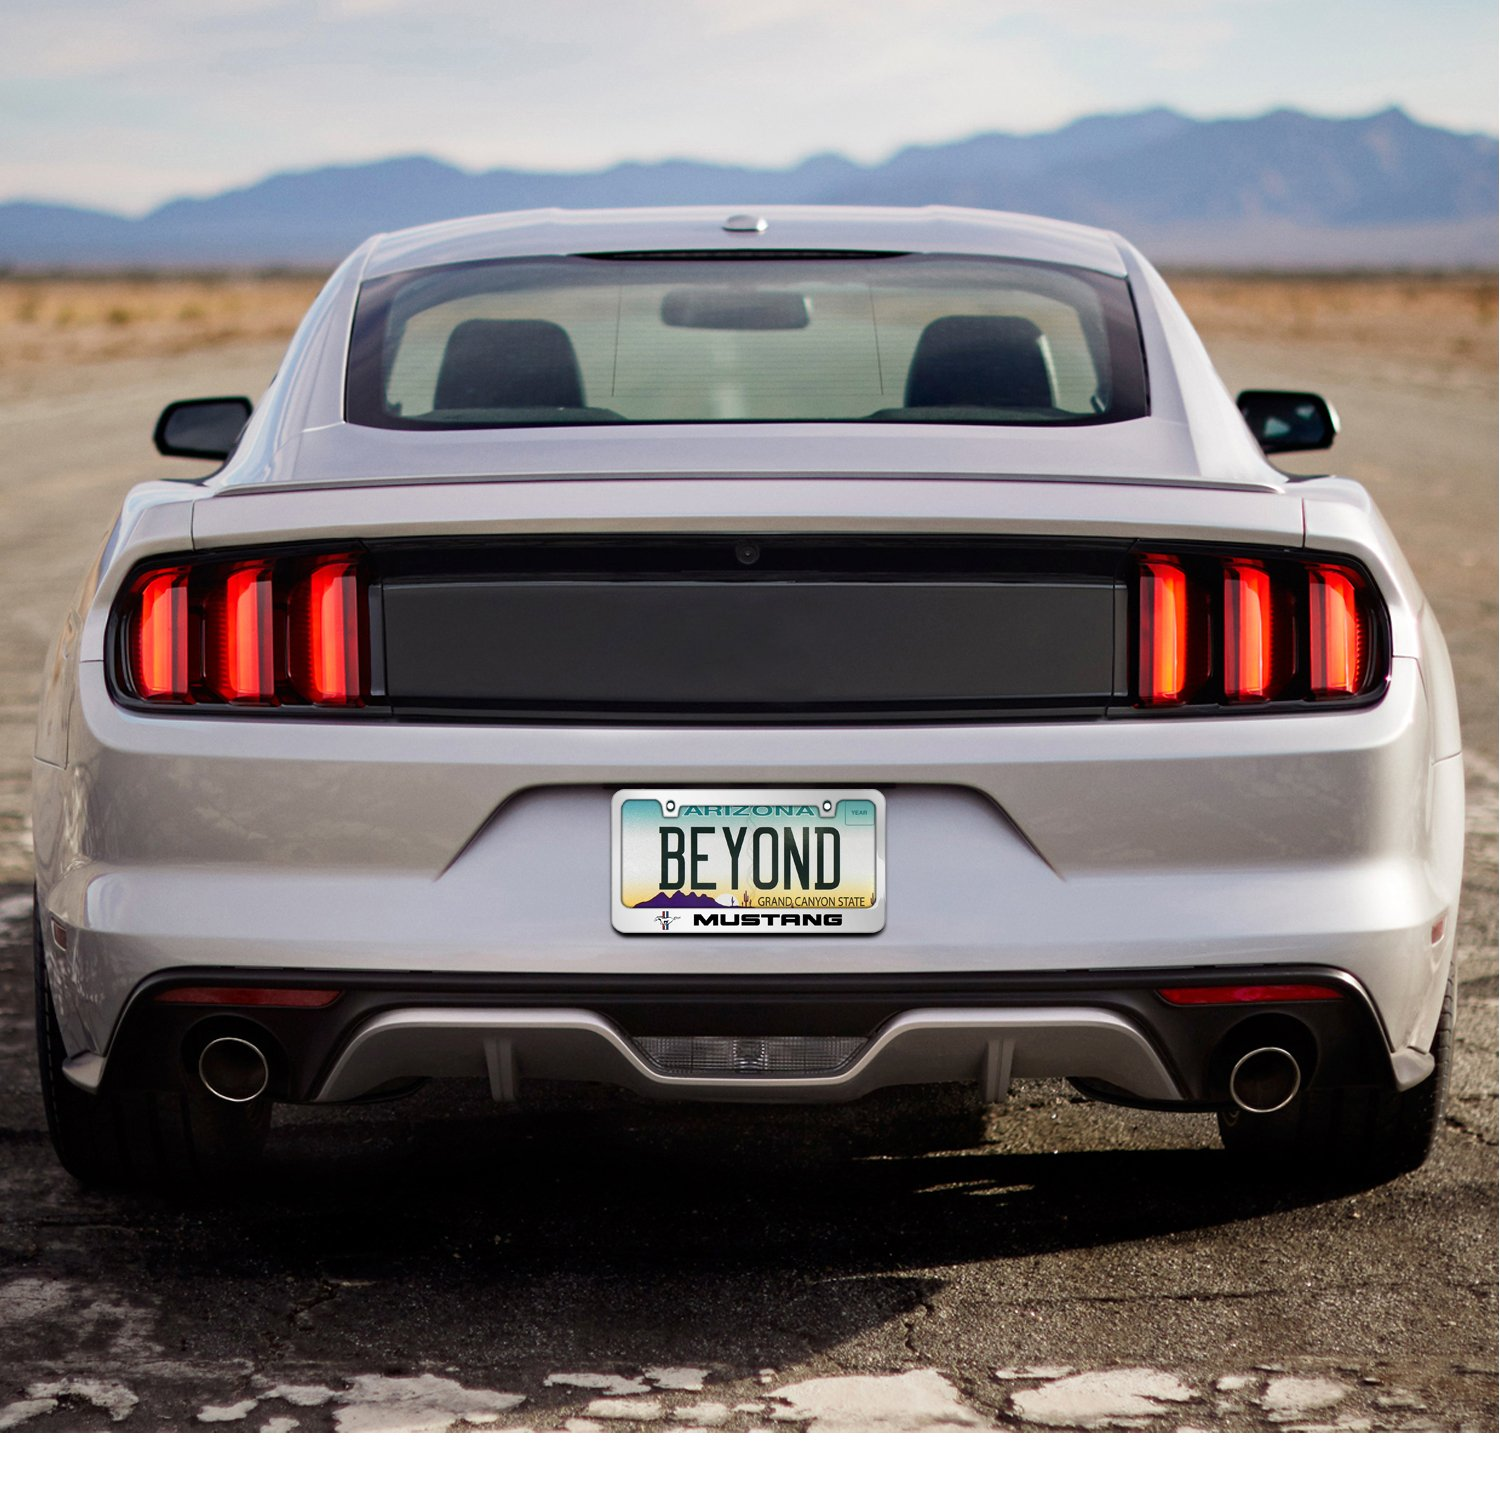 Ford Mustang Mirror Chrome Metal License Plate Frame by iPick Image Made in the USA Official Licensed Product